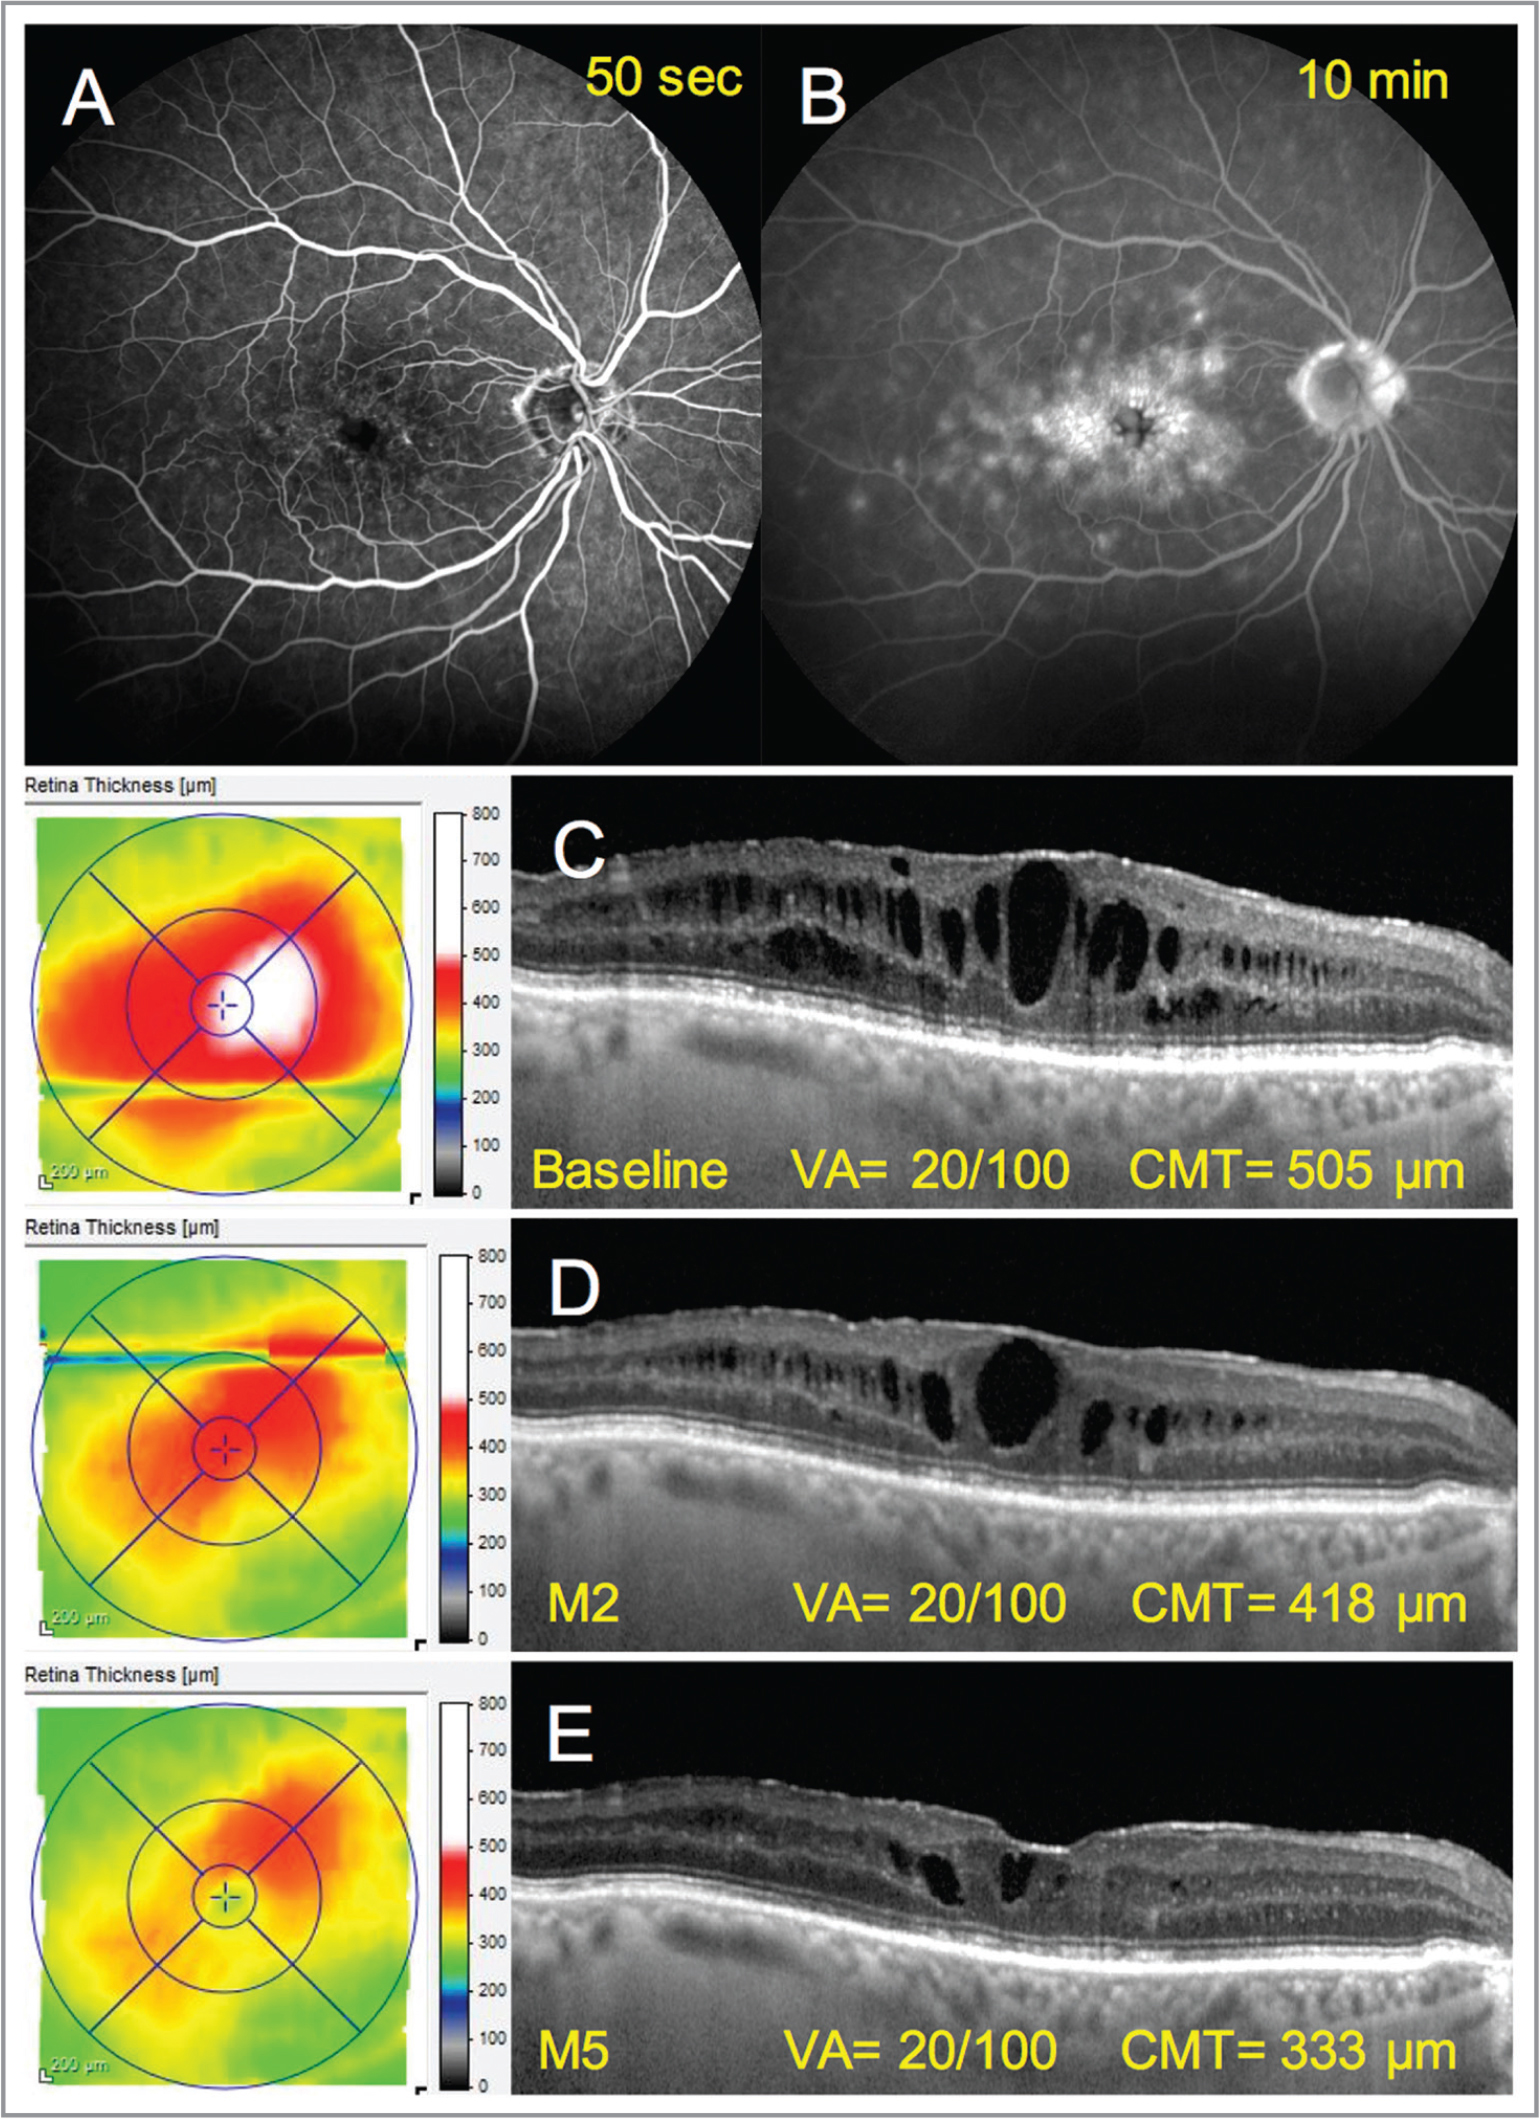 Anatomical improvement in an 80-year-old man treated by oral spironolactone and topical dexamethasone for refractory postoperative macular edema 18 months after pars plana vitrectomy, dislocated intraocular lens removal, and intraocular lens suture to the sclera. (A, B) Fluorescein angiography showed inner and outer blood-retinal barrier rupture manifesting as fine paramacular telangiectasia (A) with late filling of cystoid cavities (B), and diffuse hyperfluorescent spots on late frames (B), respectively. There was a late hyperfluorescence at the disc (B) as usually observed in Irvine-Gass syndrome. (C) Optical coherence tomography at presentation showing marked, diffuse cystoid macular edema and a fine epiretinal membrane at the inner retinal surface. A few intraretinal hyperreflective dots were visible. (D) Two months after combined therapy associating oral spironolactone (50 mg/day) and topical dexamethasone (four times/day) was initiated, there was a clear reduction of macular edema. (E) Three months after tapering of dexamethasone drops at three times/day, macular edema further improved, but visual acuity remained unchanged. The square-shaped morphology of residual hyporeflective spaces suggests possible degenerative cavities. M = month; VA = visual acuity; CMT = central macular thickness.